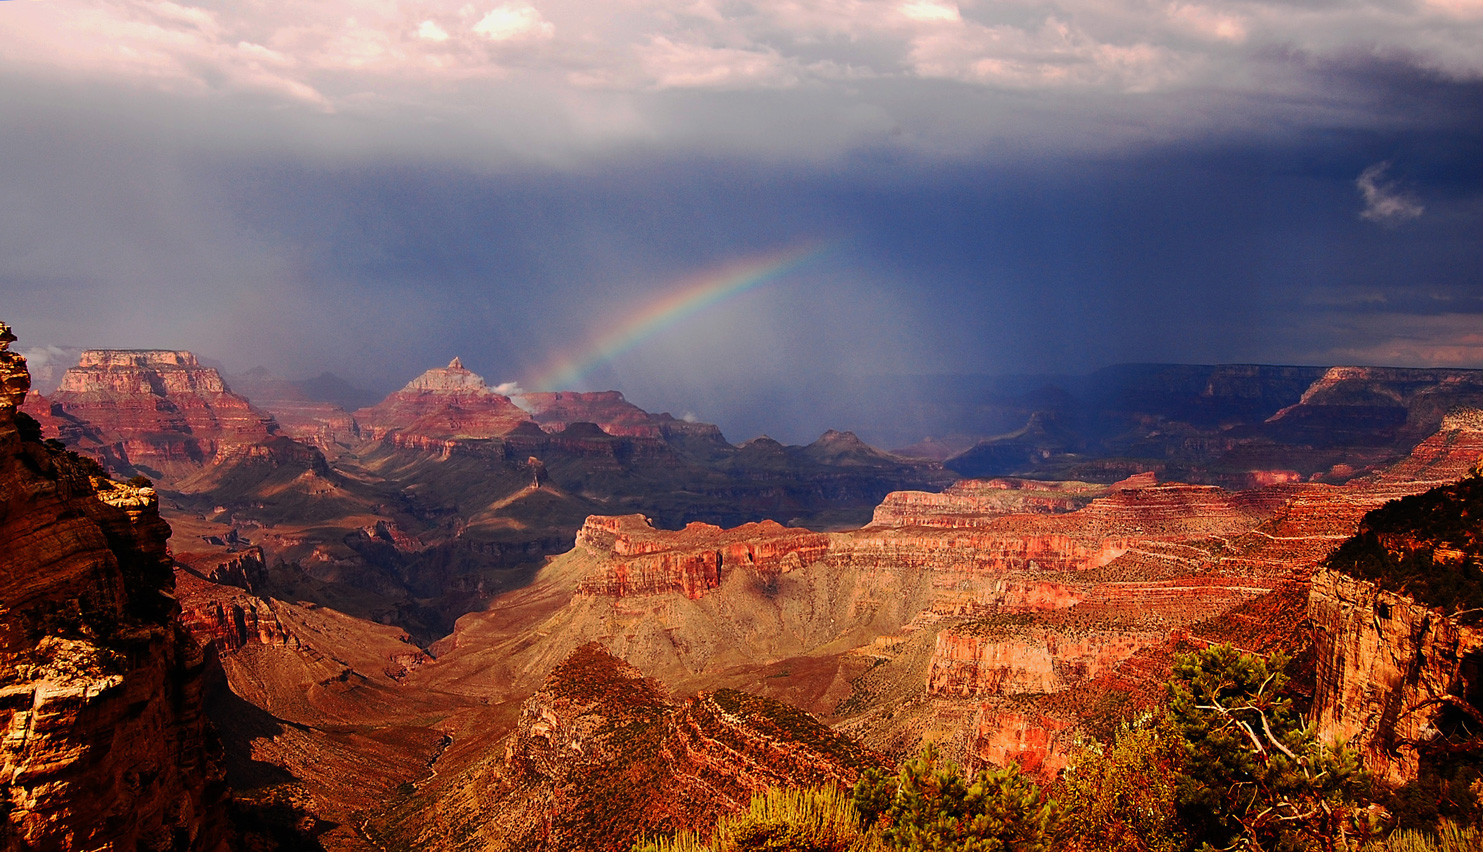 The Grand Canyon offers incredible views without human embellishment.